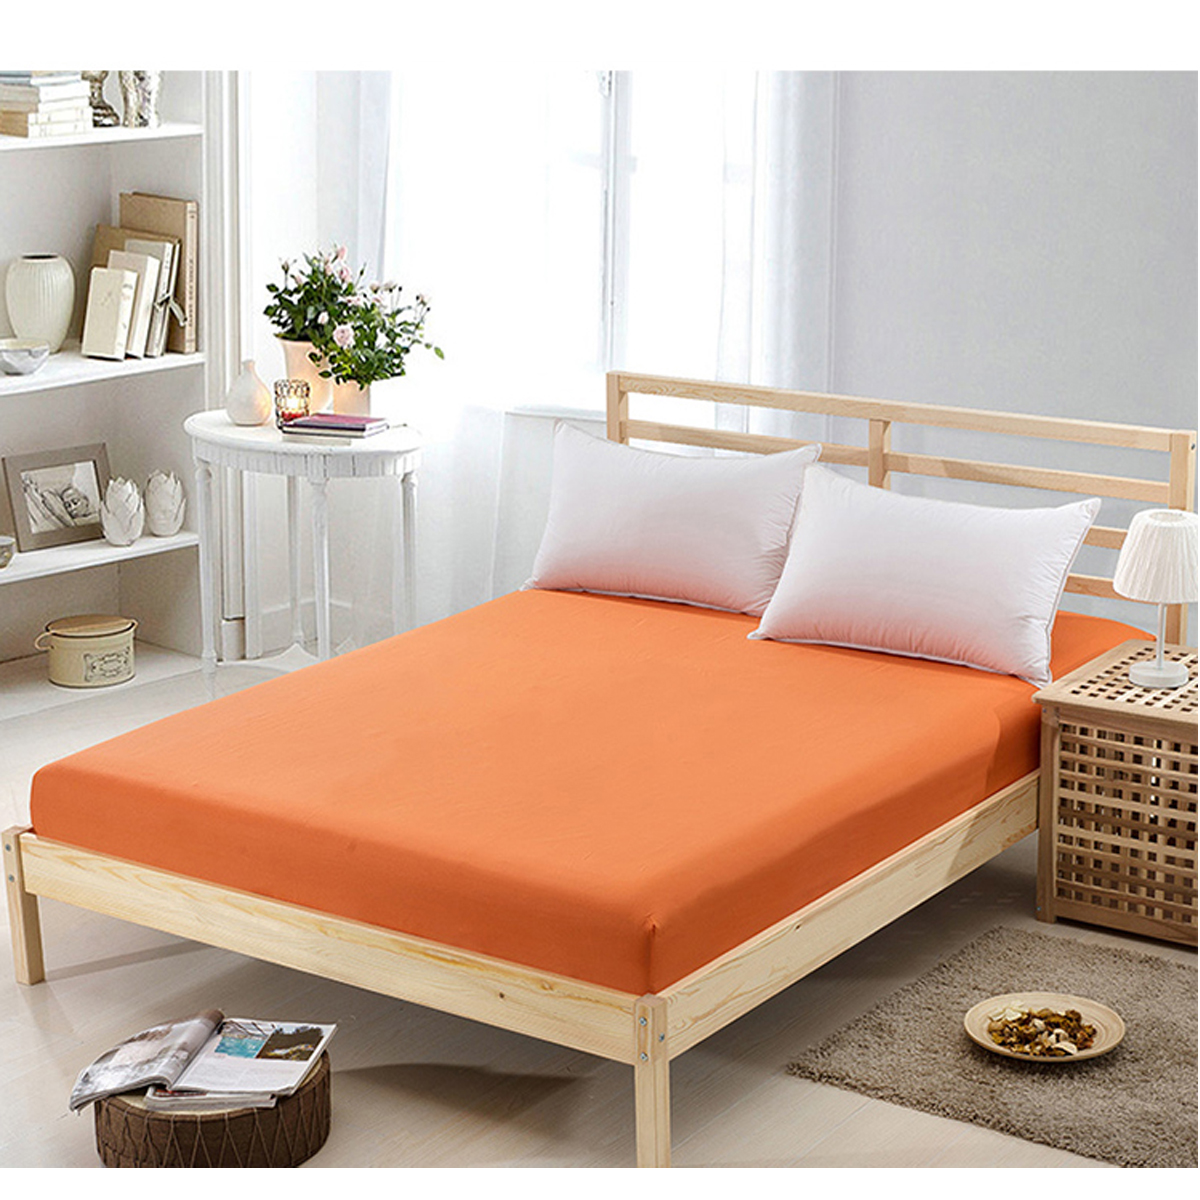 Disposable Bed Sheets Canada: Solid Color Flat Fitted Sheet Bed Coverlet Set Comfort